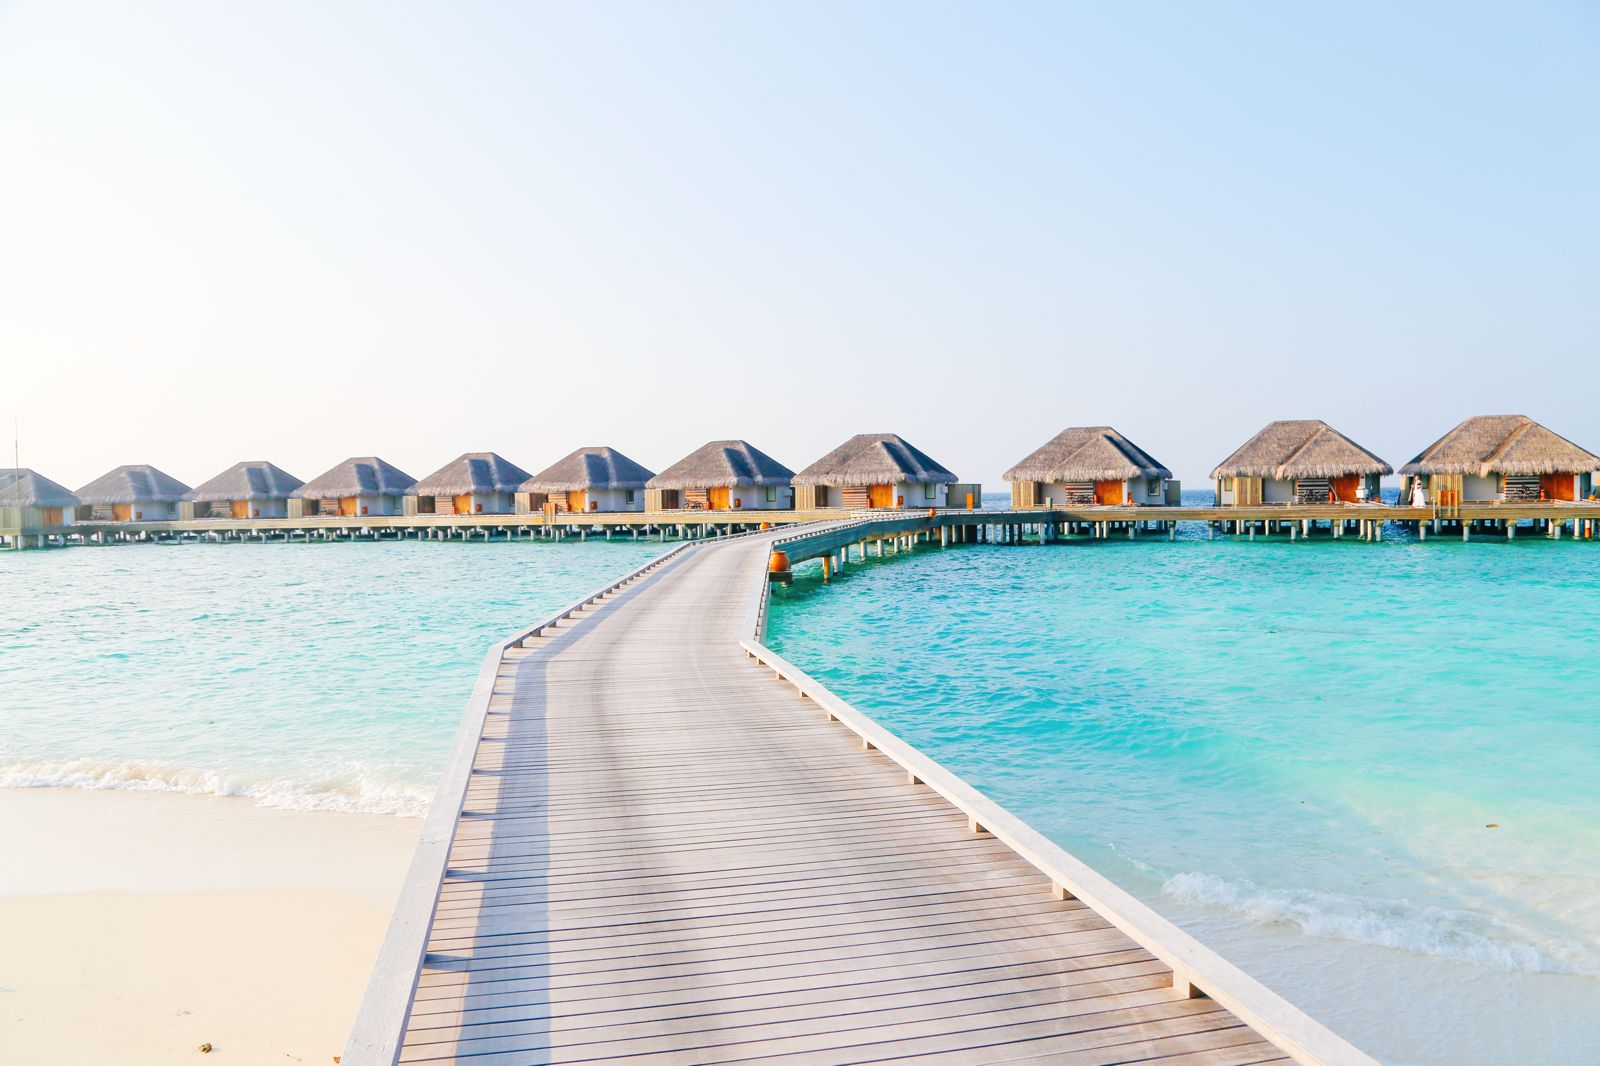 Arrival At The Dusit Thani In The Maldives! (41)